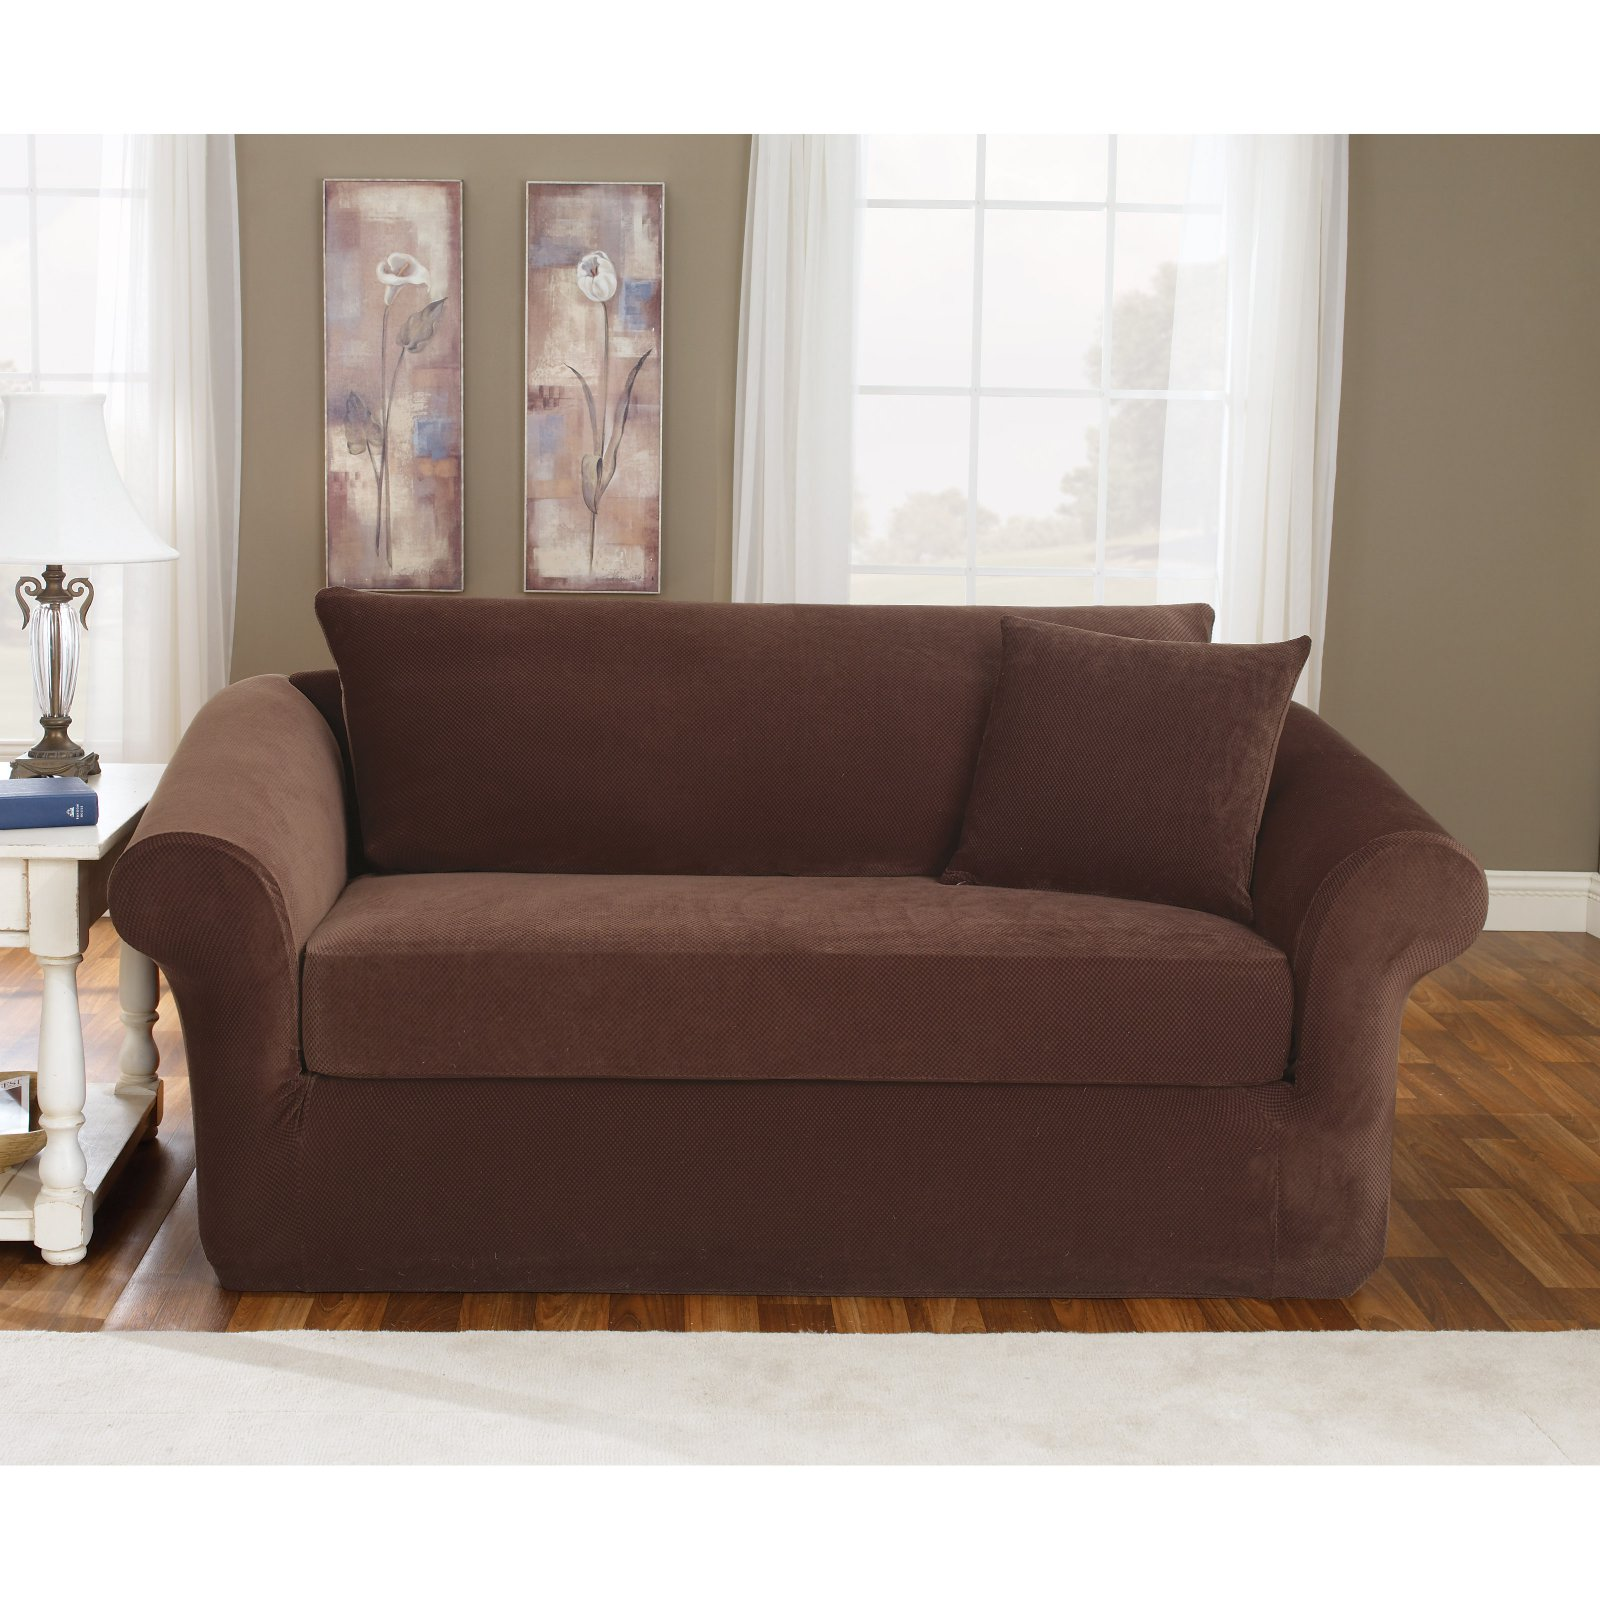 Sure Fit Stretch Pique Three Piece Sofa Slipcover